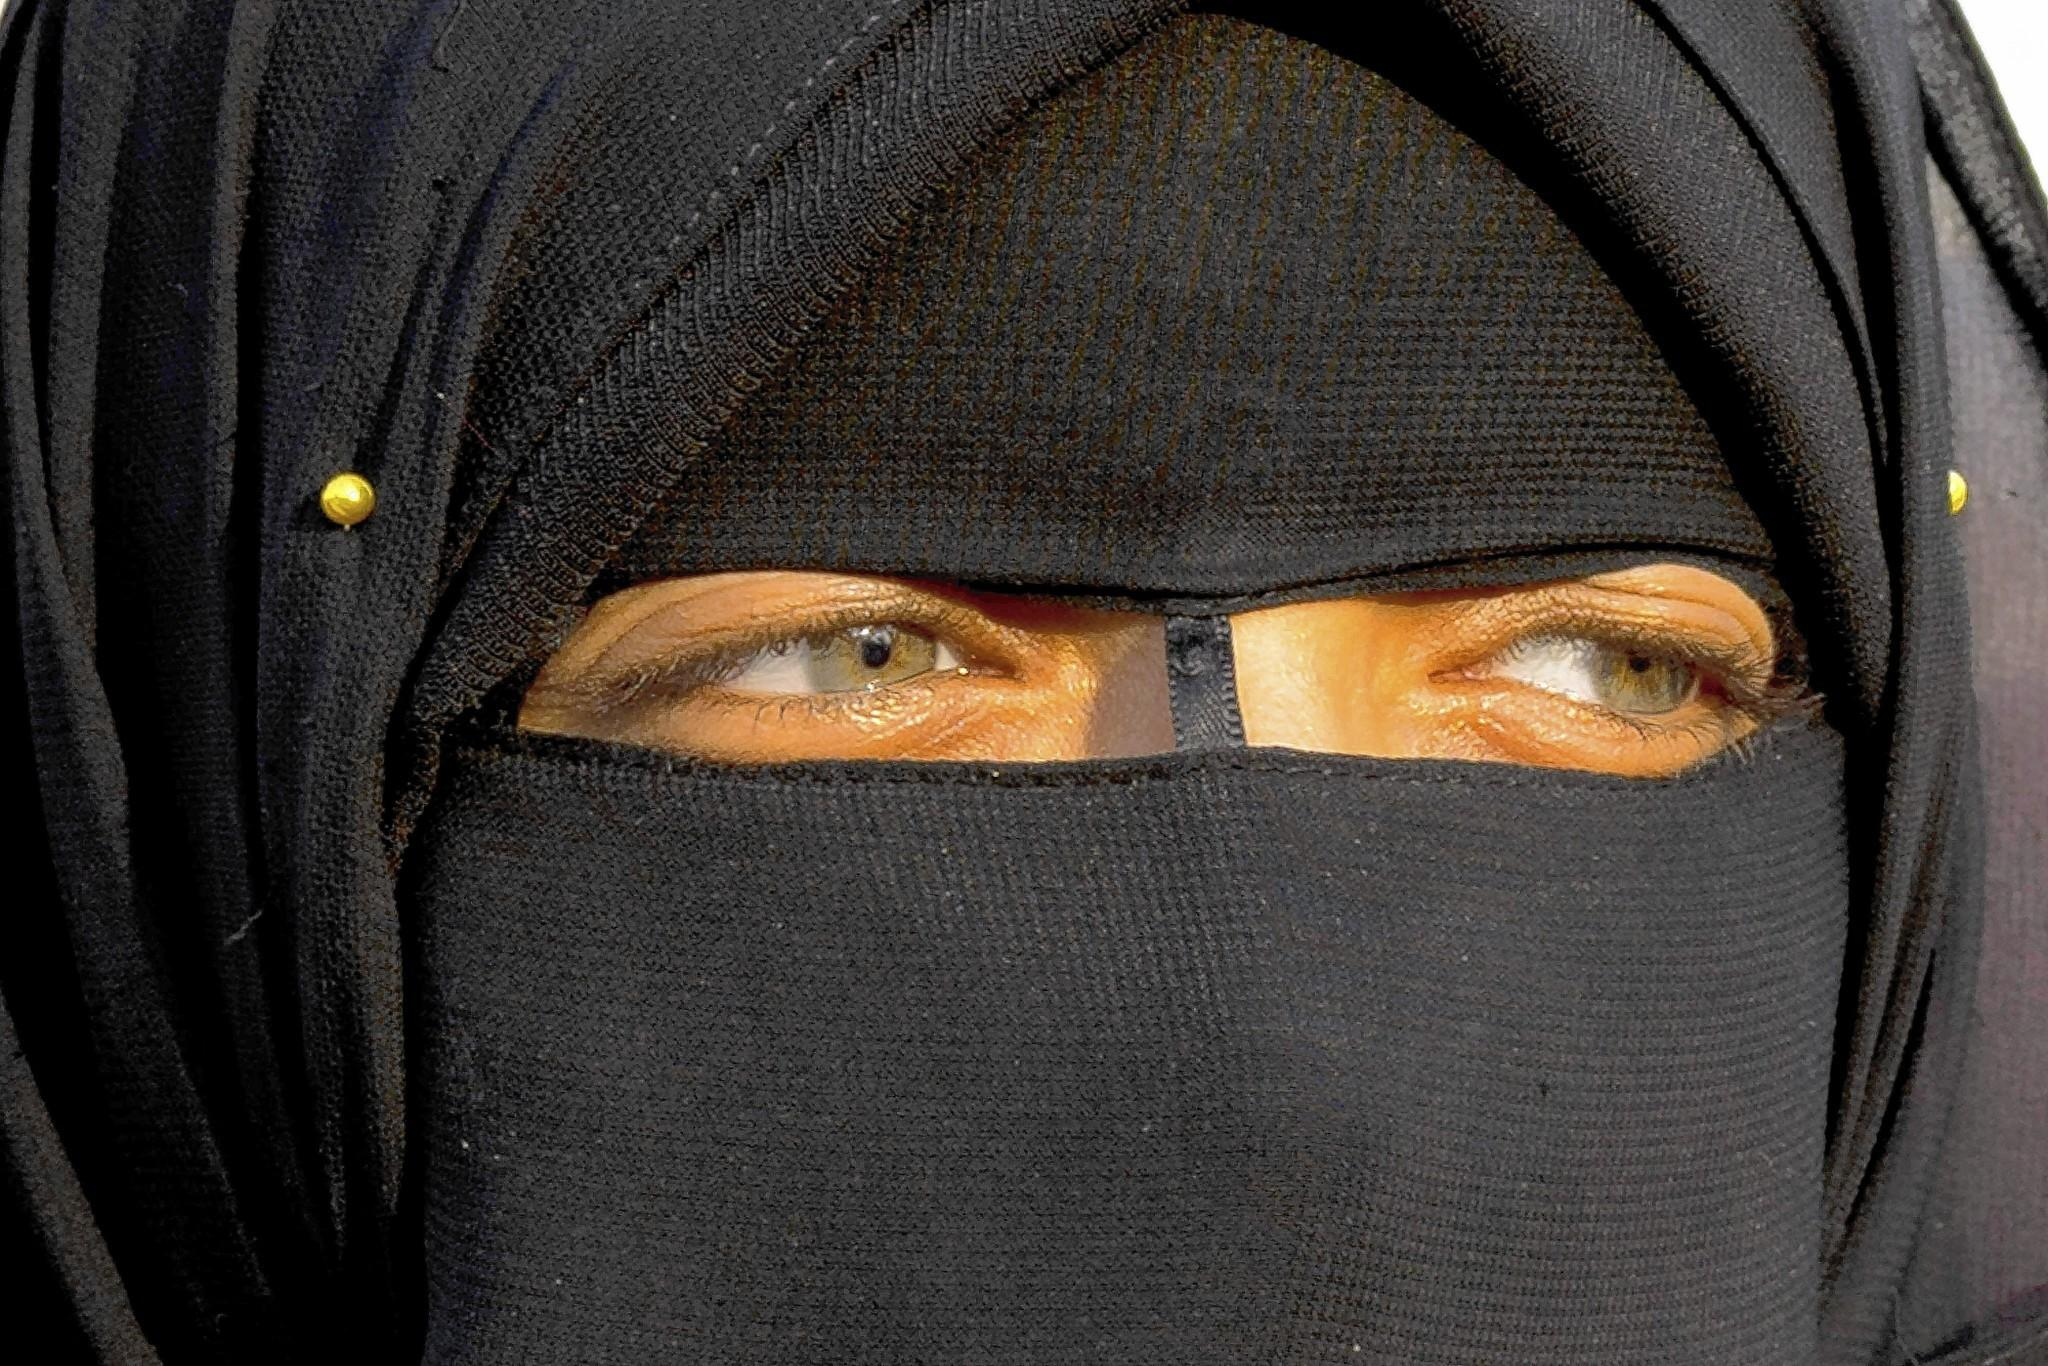 A woman attends a political rally in Cairo last year. Female genital excision has been banned in Egypt since 2008, but the procedure is common, especially away from urban areas.